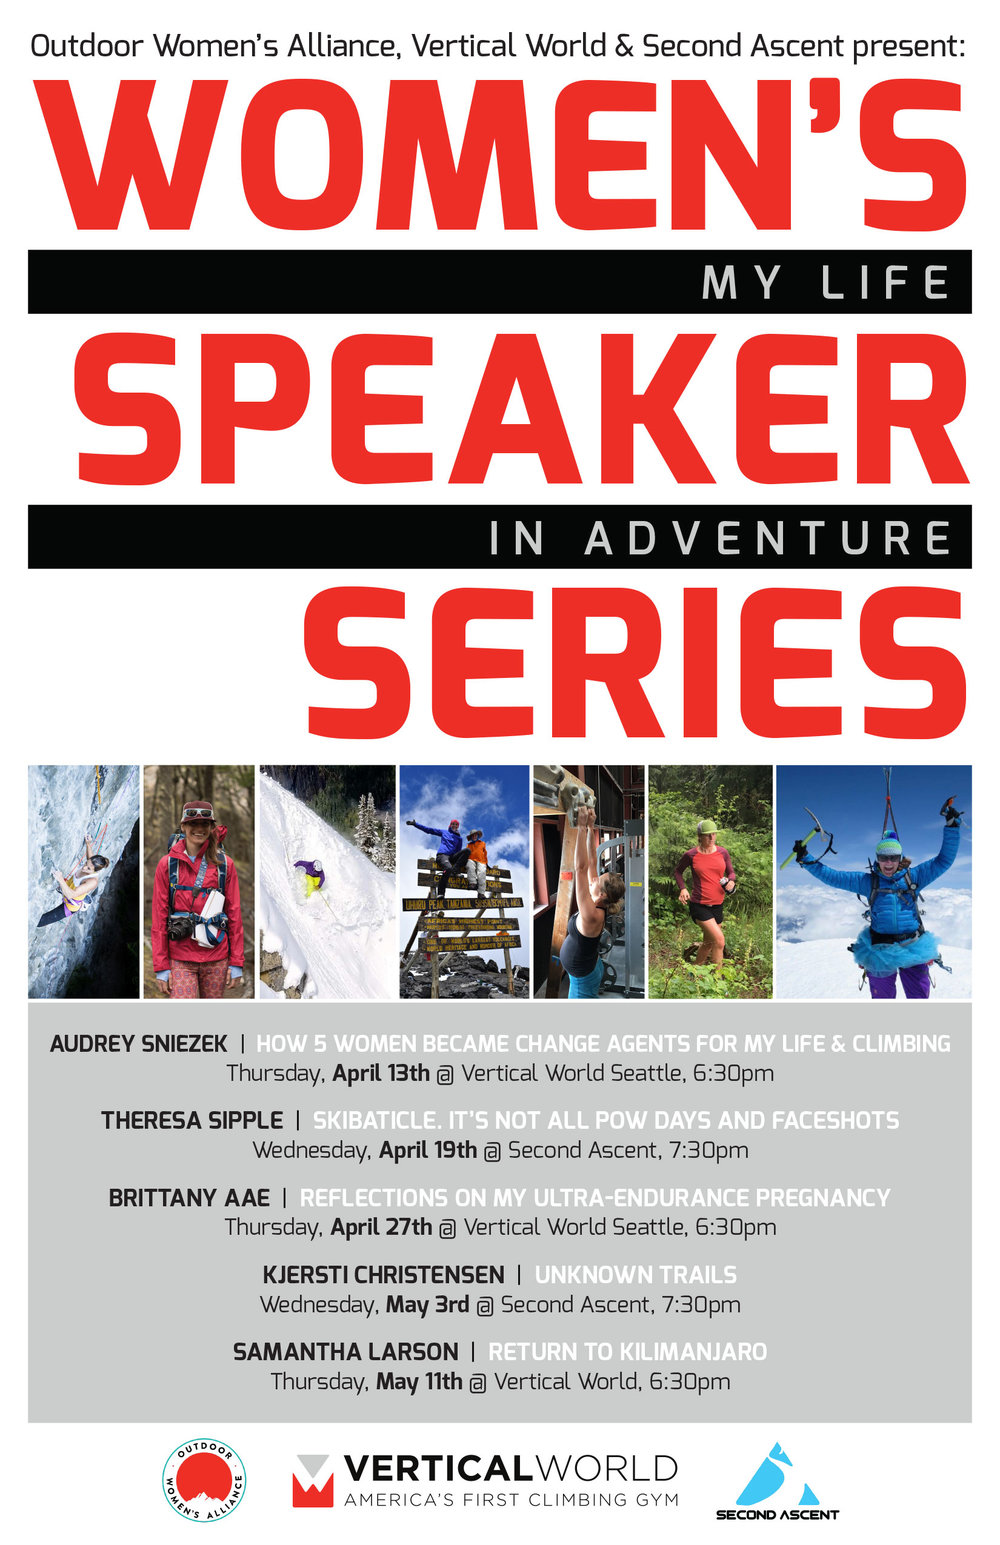 SpeakerSeries-webposter.jpg